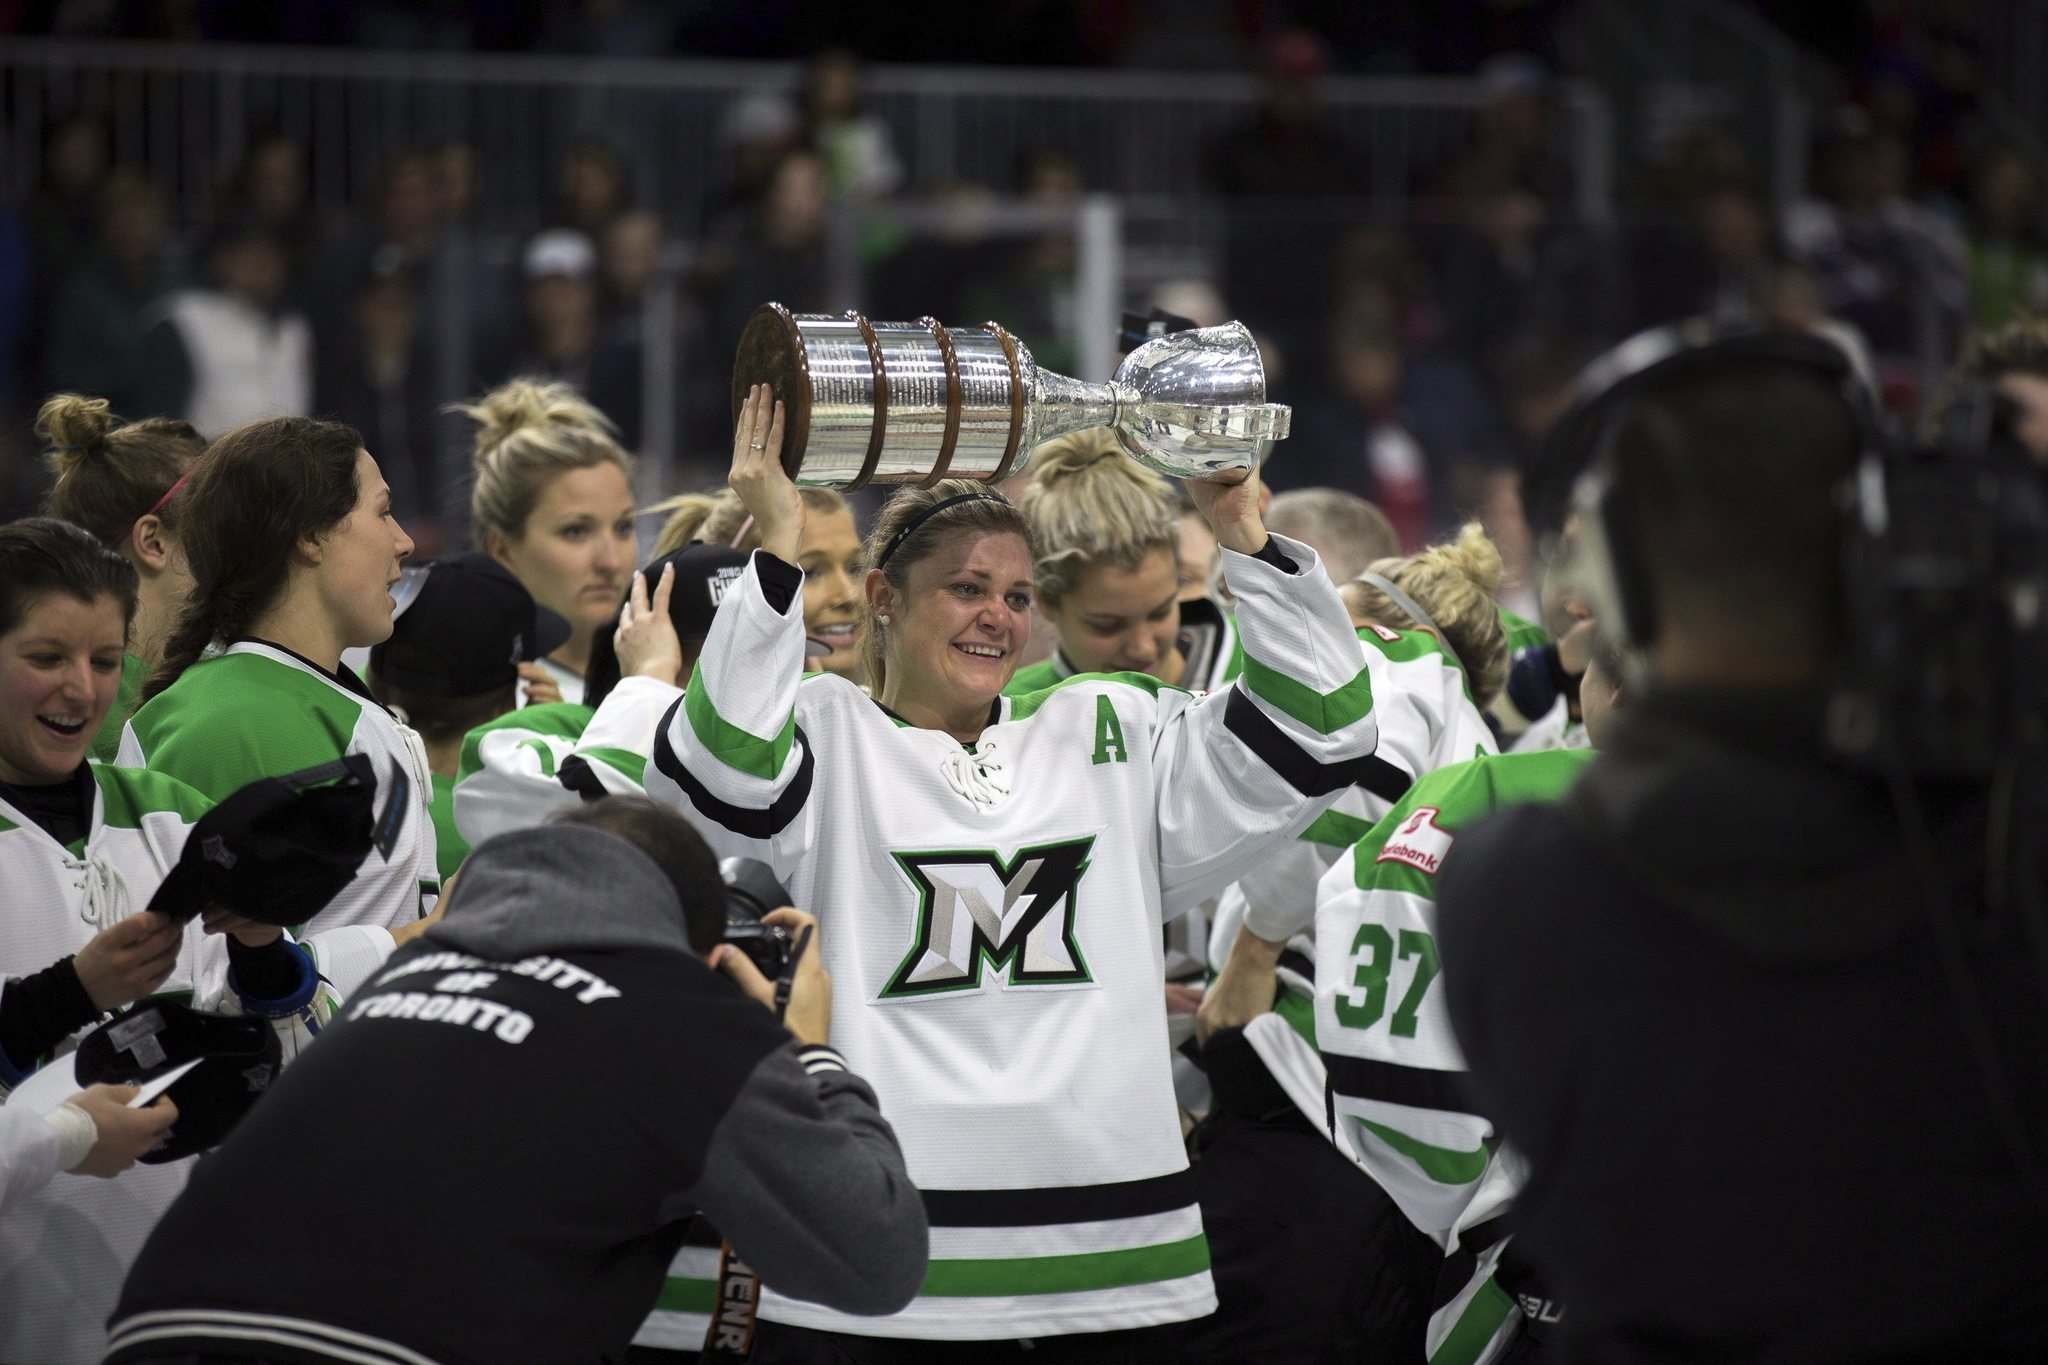 Chris Donovan / The Canadian Press files</p><p>The Markham Thunder hoisted the CWHL's Clarkson Cup in 2018.</p>